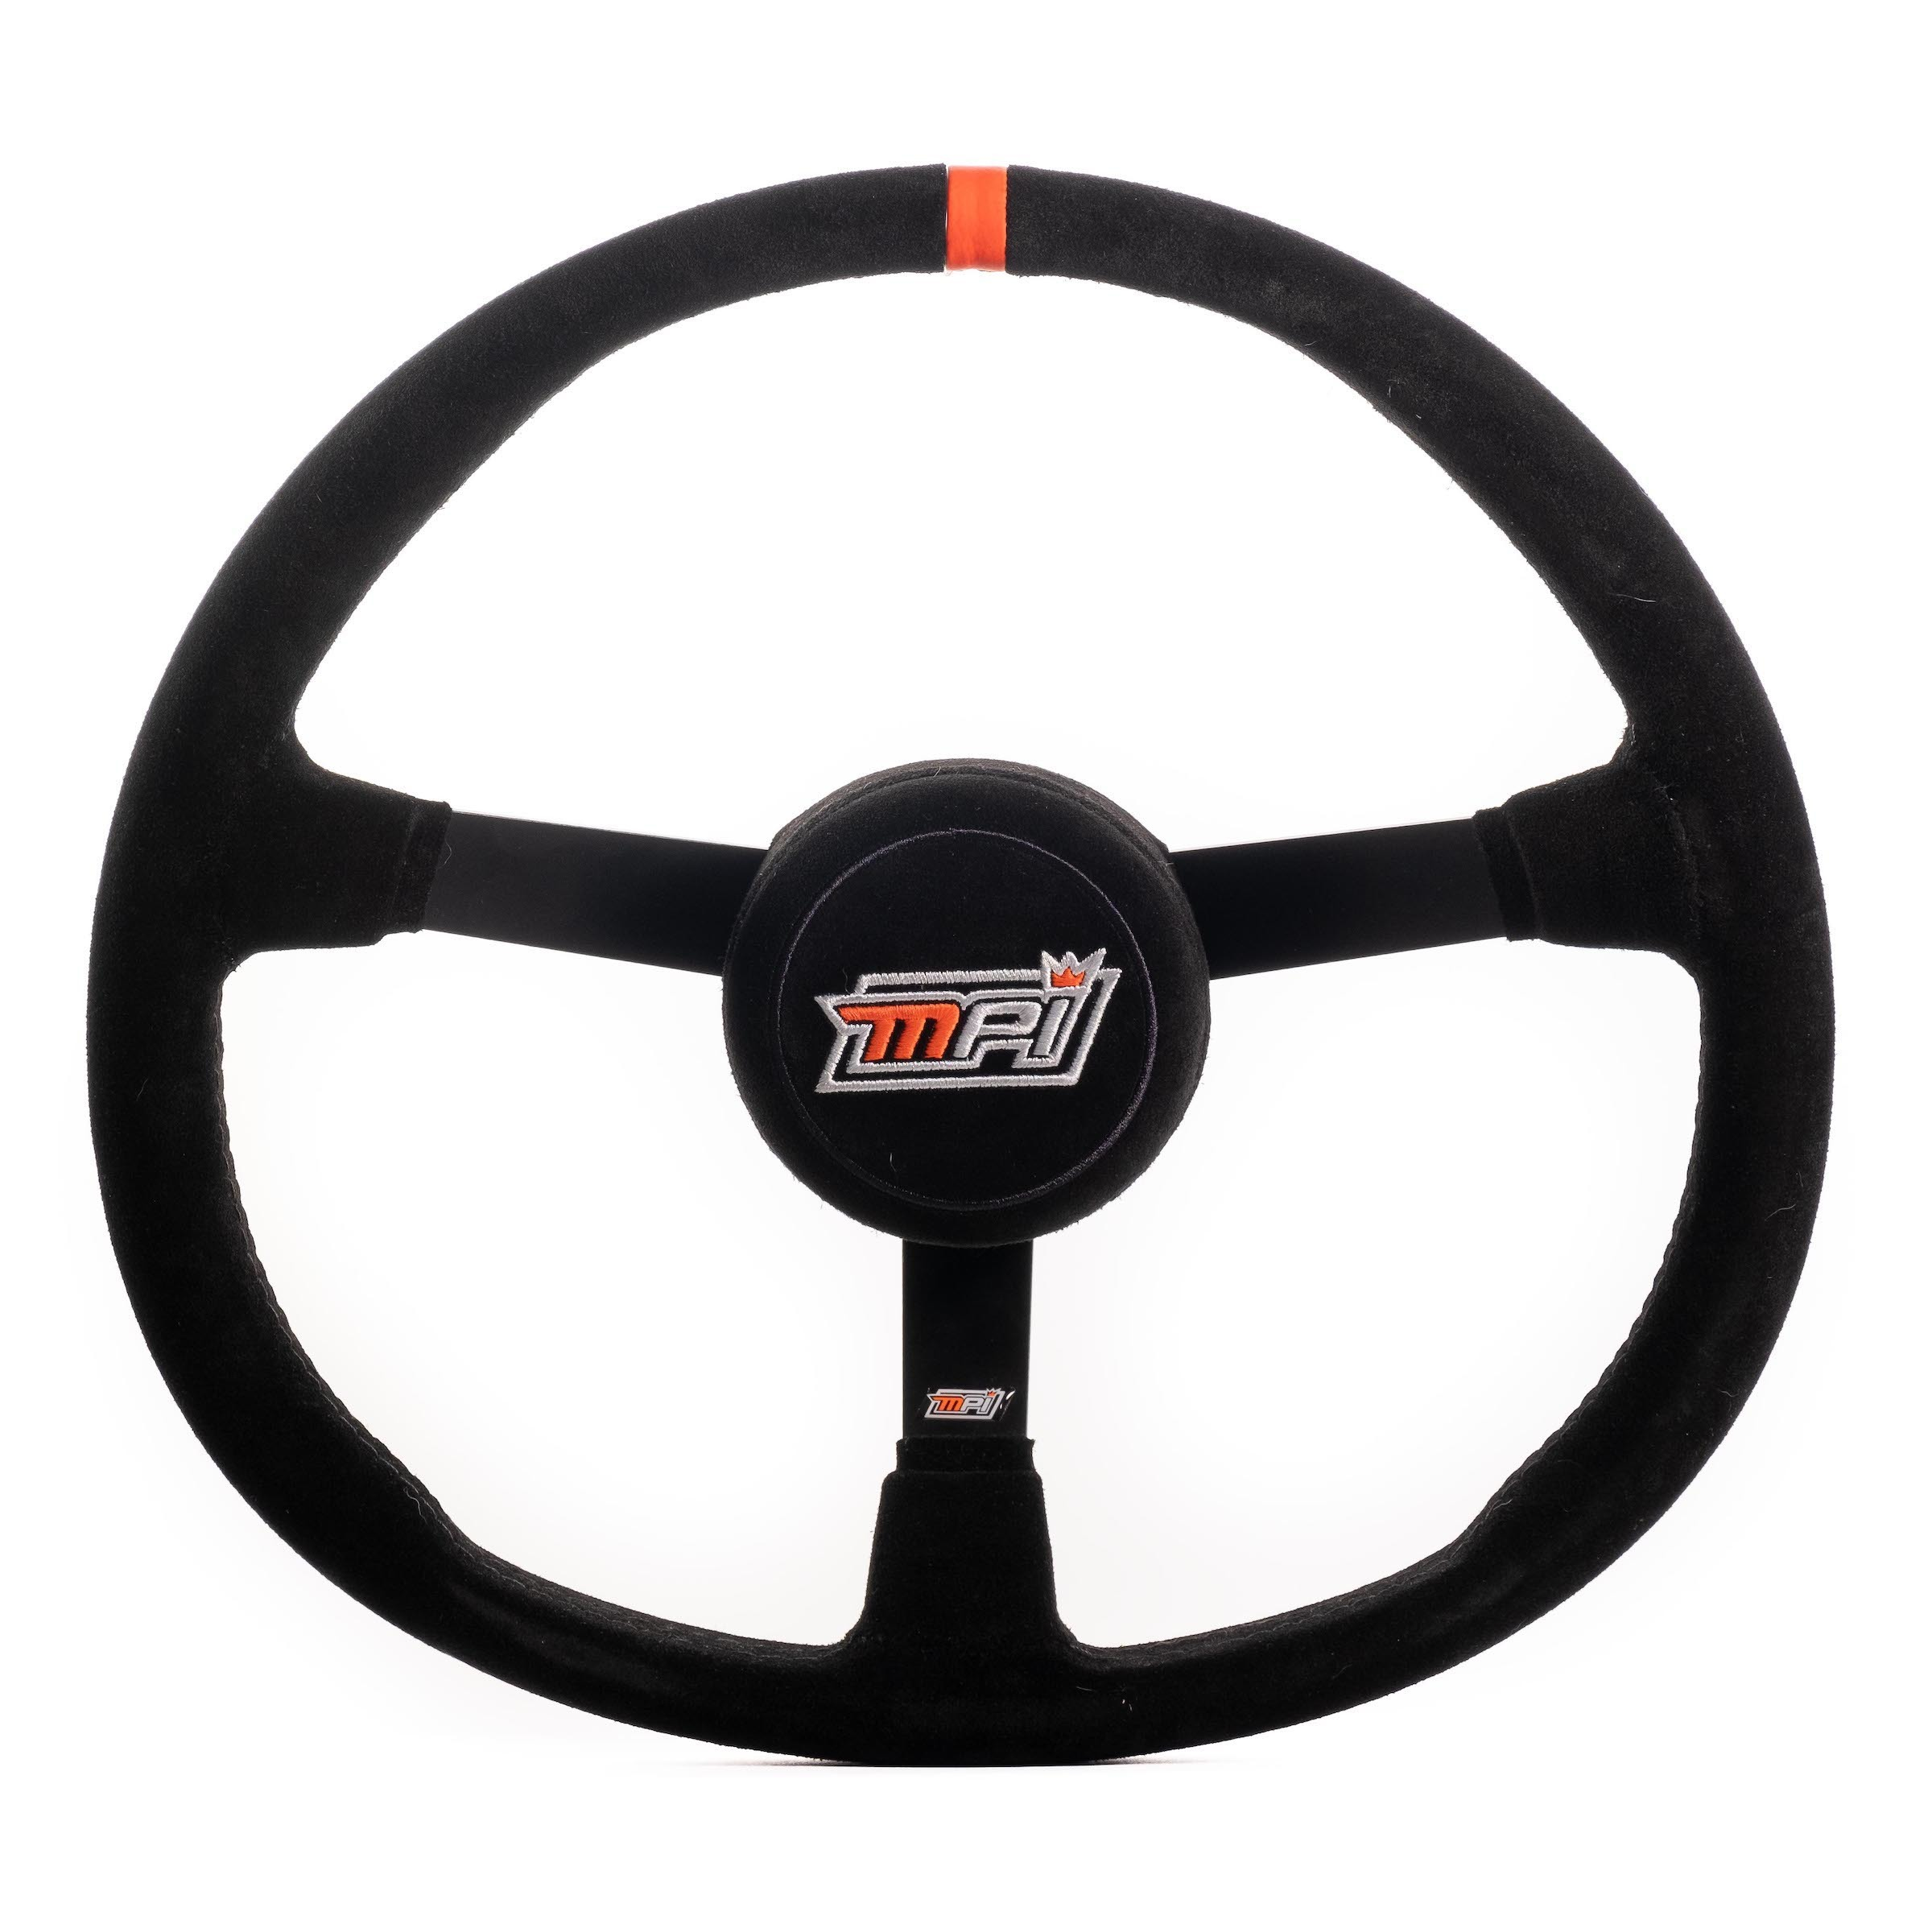 MPI USA MPI-MP2-14 Steering Wheel, Asphalt Circle Track, 14 in Diameter, 3-Spoke, 3 in Dish, Black Suede Grip, Orange Stripe, Thumb Insert, Steel, Black, Each